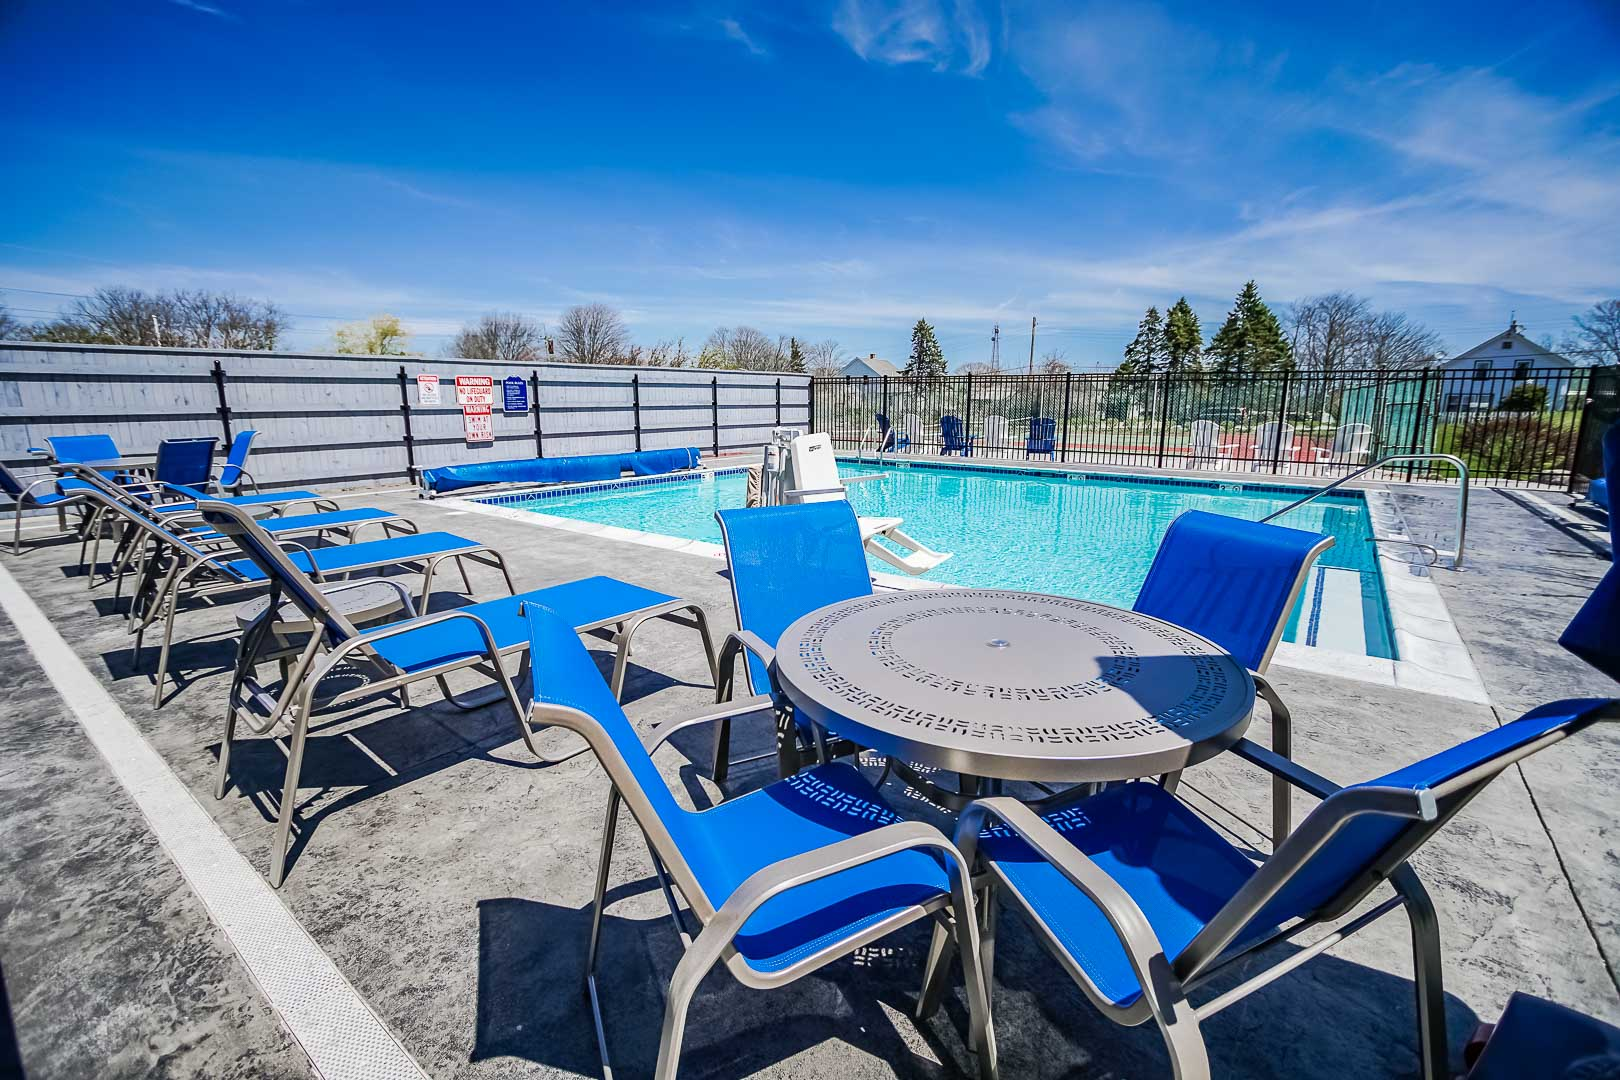 A spacious outdoor swimming pool at VRI's Neptune House Resort in Rhode Island.